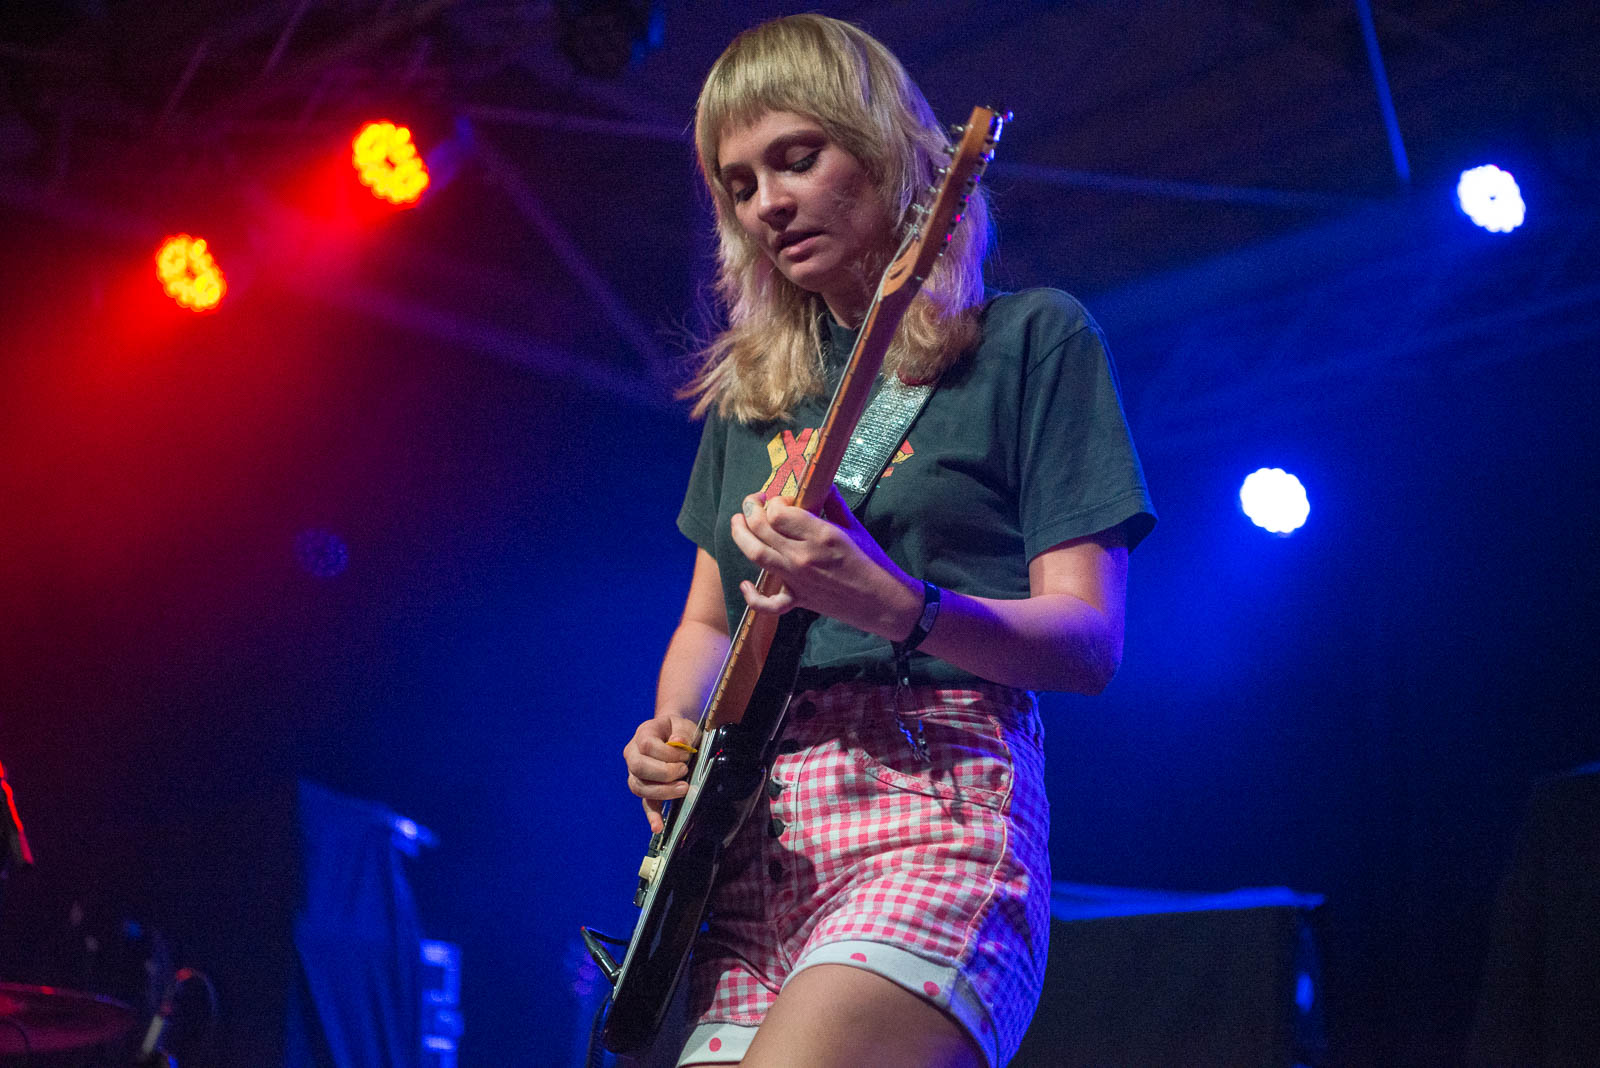 Cherry Glazerr at House of Vans